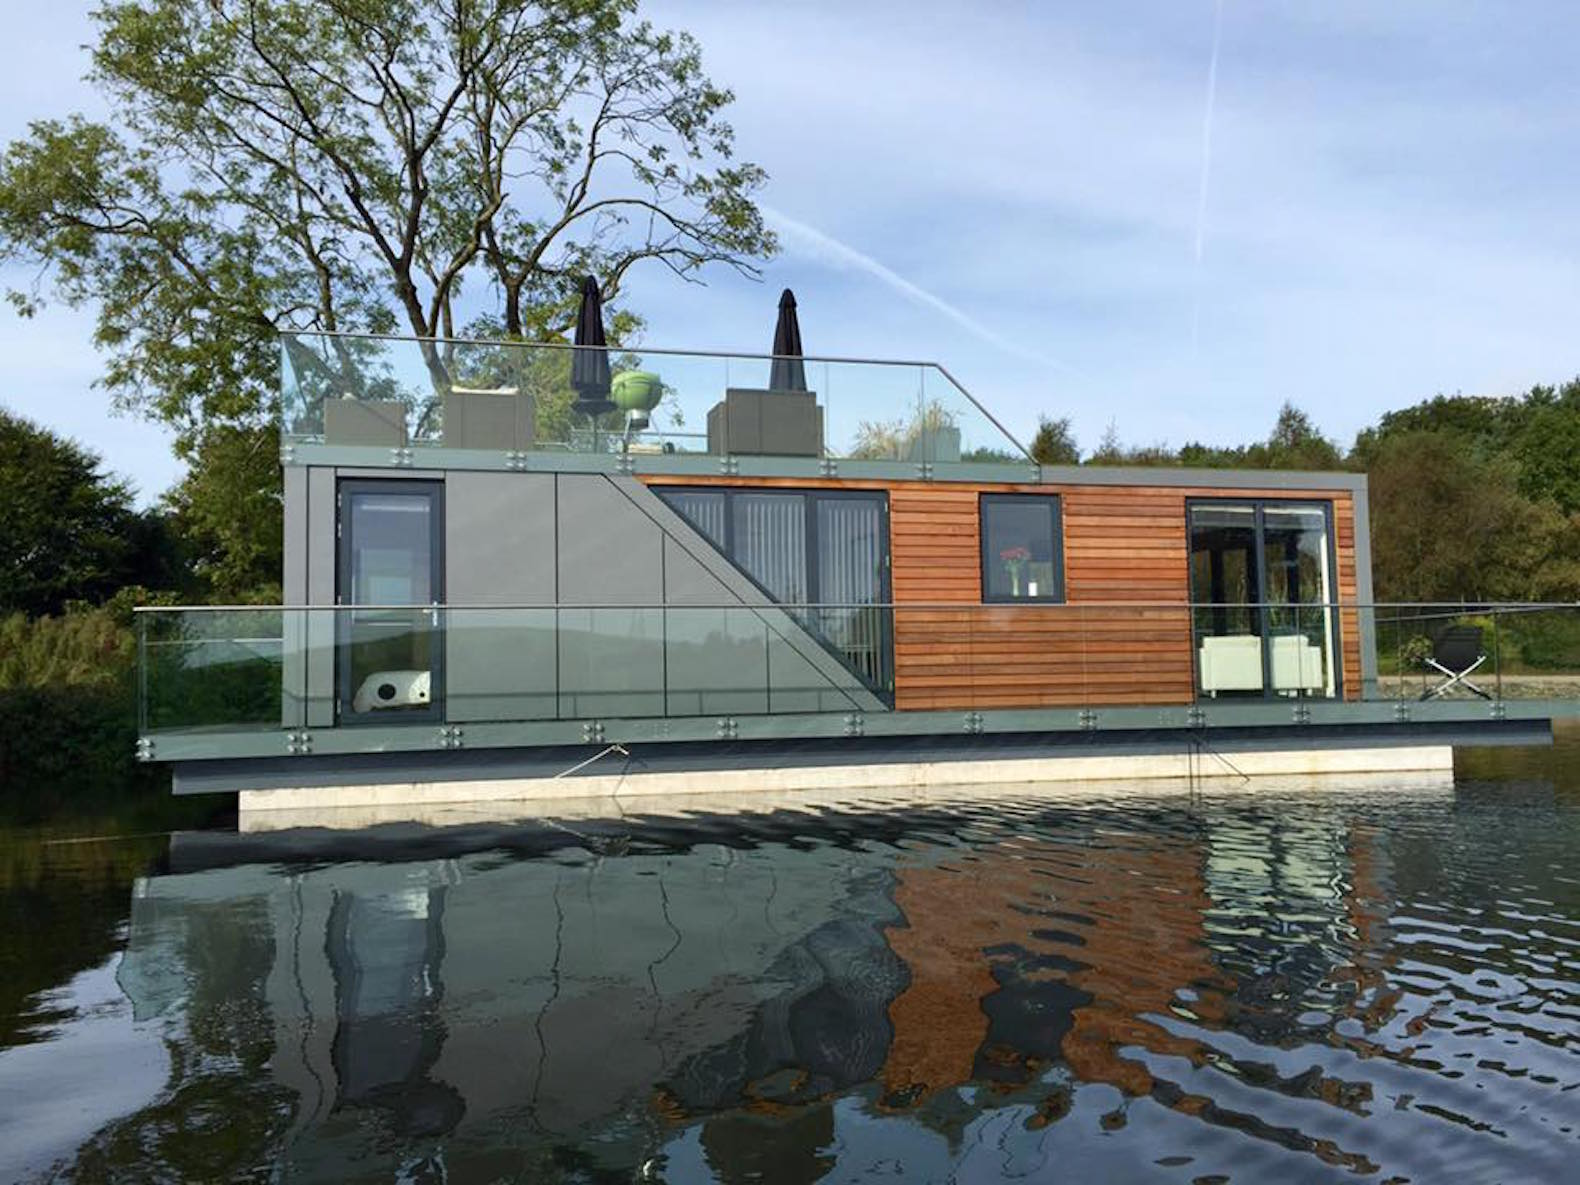 Interesting Prefab Houseboats Let You Live On Water A Minimal Energyfootprint Floating Home Inhabitat Green Architecture Floating Homes Sale Sale San Diego Louisiana Floating Homes curbed Floating Homes For Sale